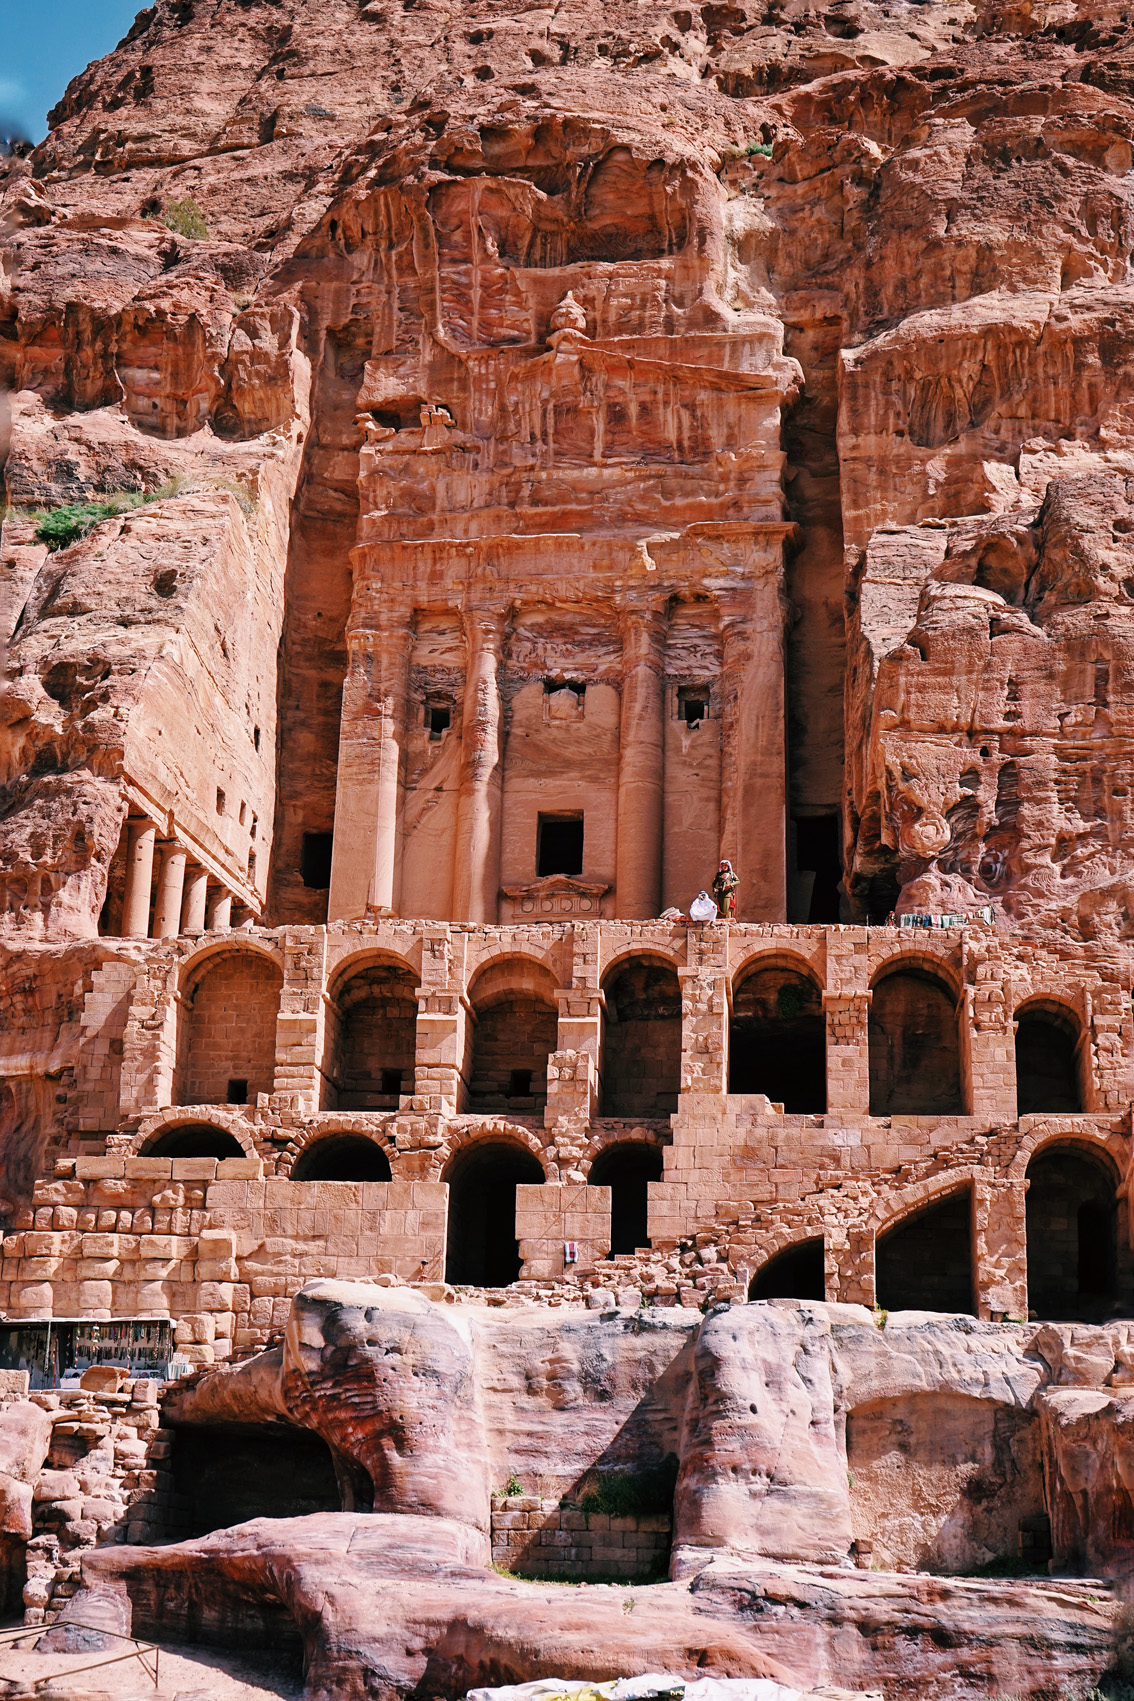 36 The Treasury of Petra and the lowest place on Earth. Jordan, second chapter.